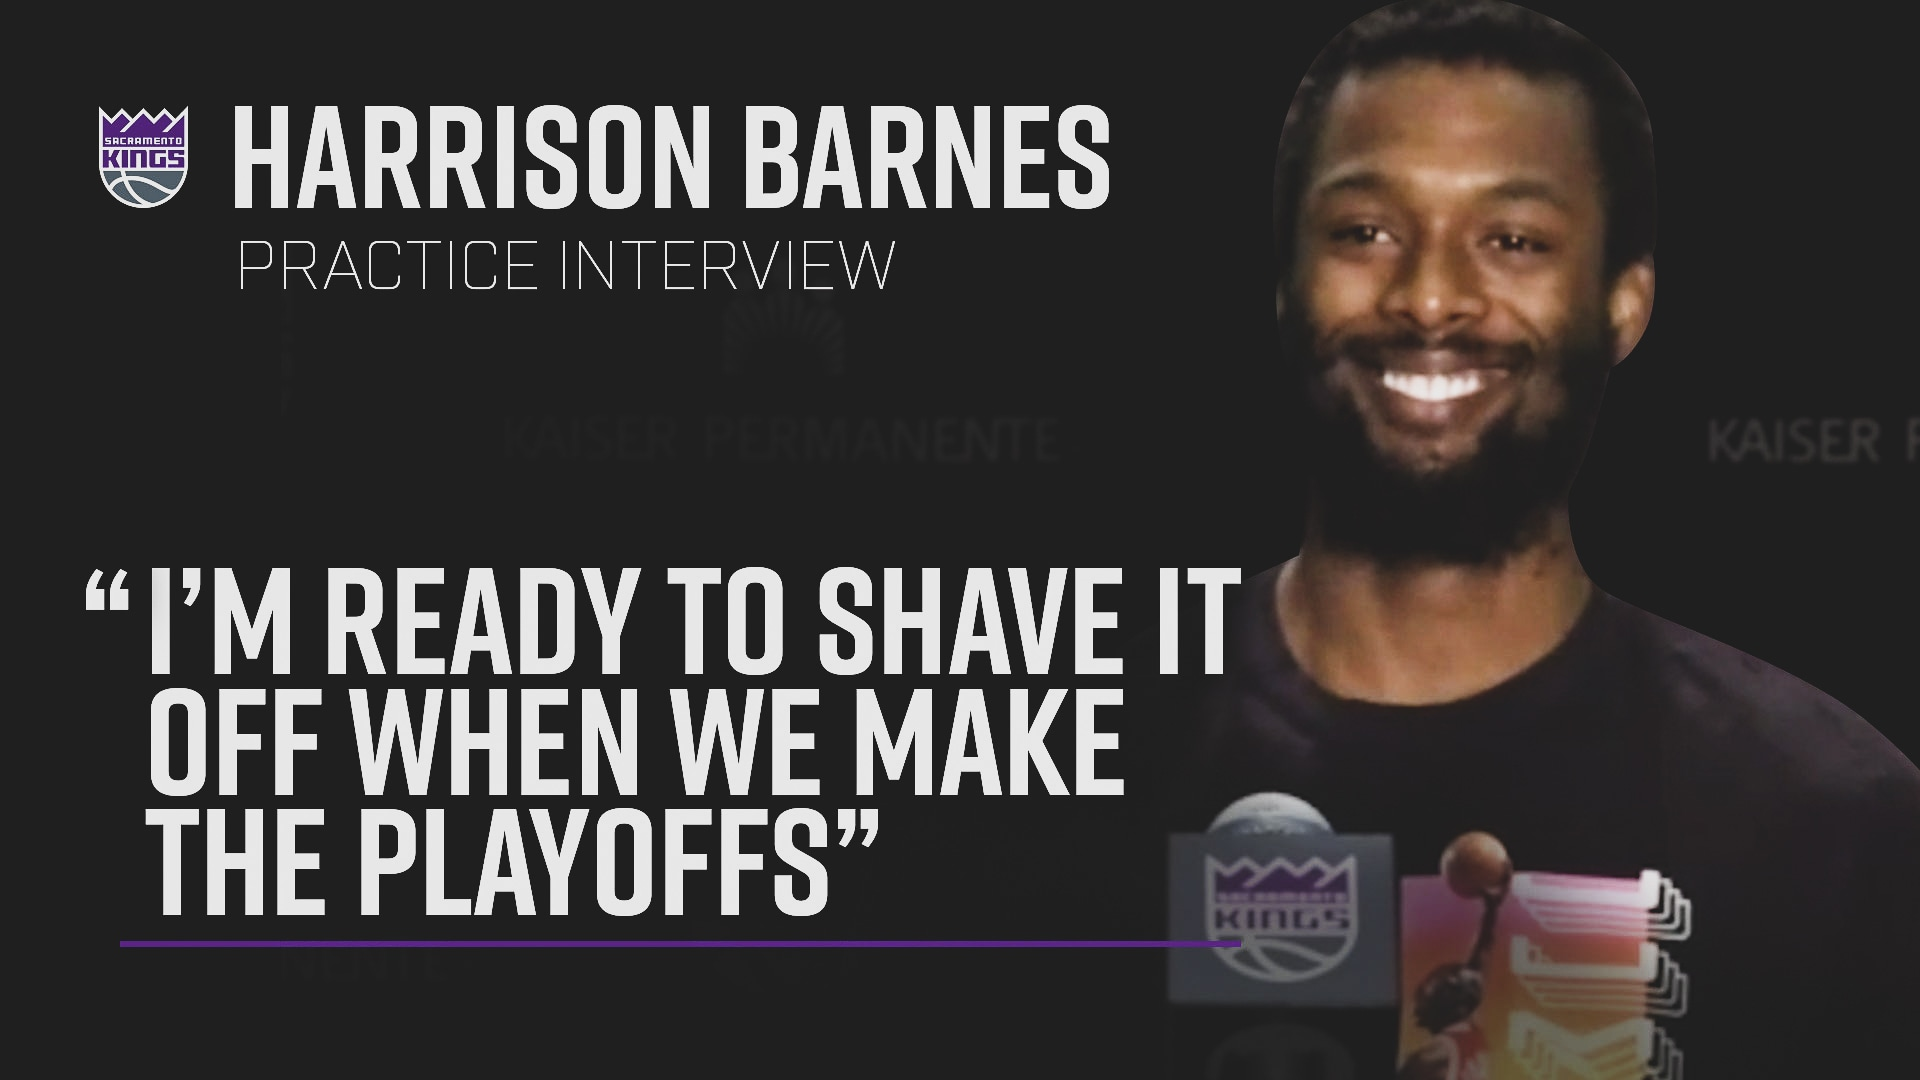 Barnes Talks Playoff Beard | Practice Interview 7.3.20